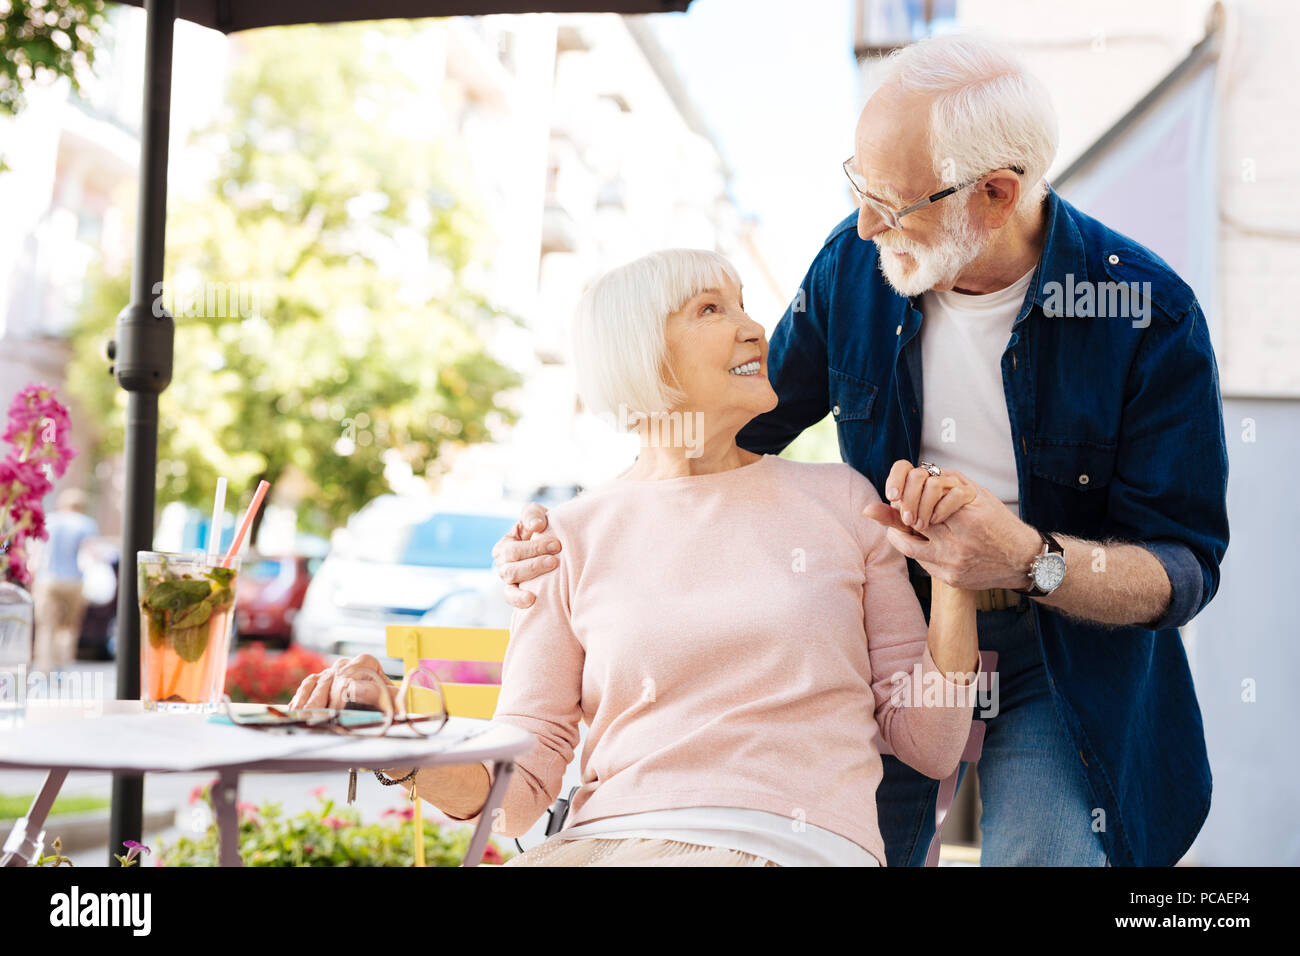 Attractive senior man and woman having date Stock Photo